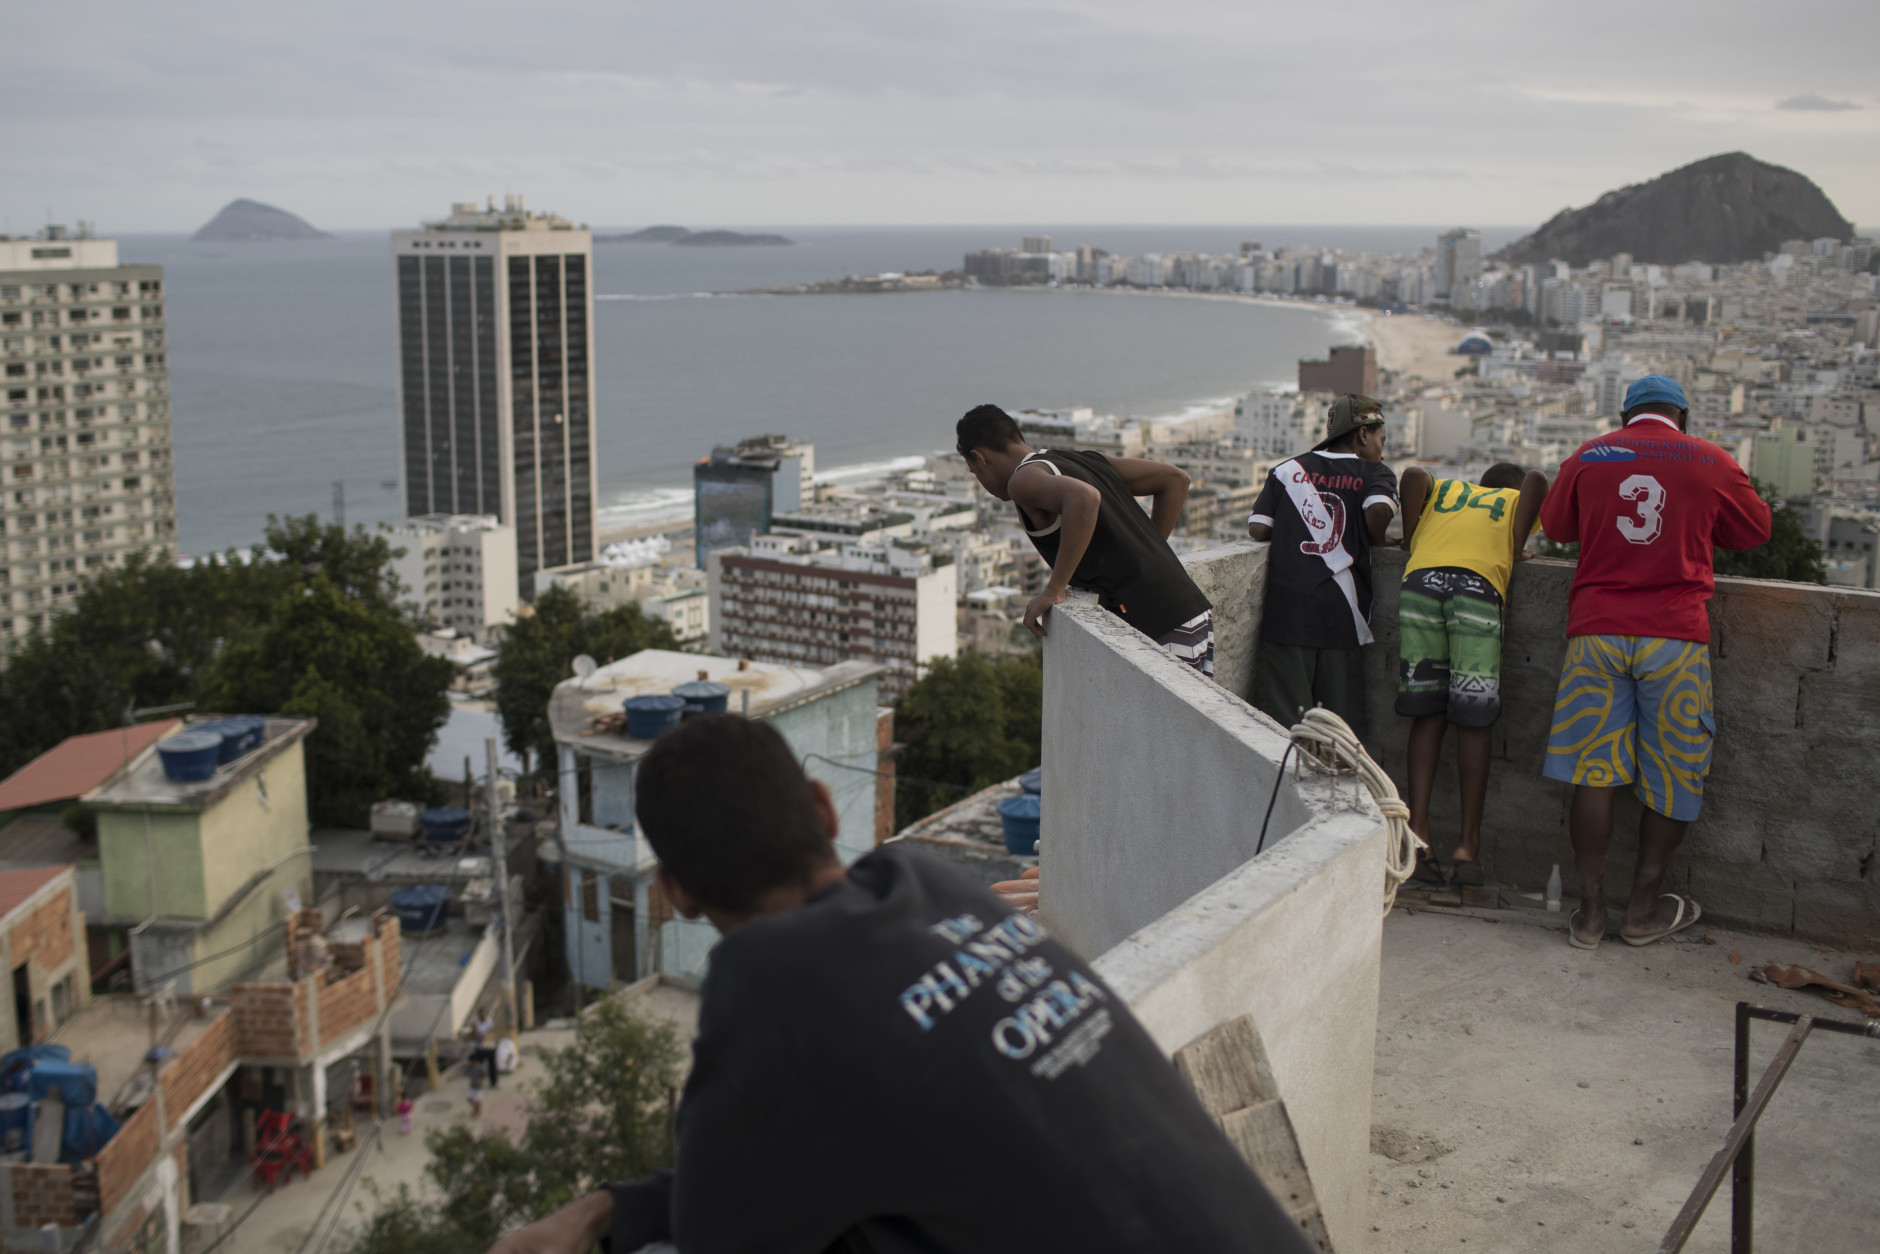 Boys look at kites atop the Babilonia slum, overlooking Copacabana beach in Rio de Janeiro, Brazil, Wednesday, Aug. 3, 2016. The Olympics are scheduled to open Aug. 5. (AP Photo/Felipe Dana)